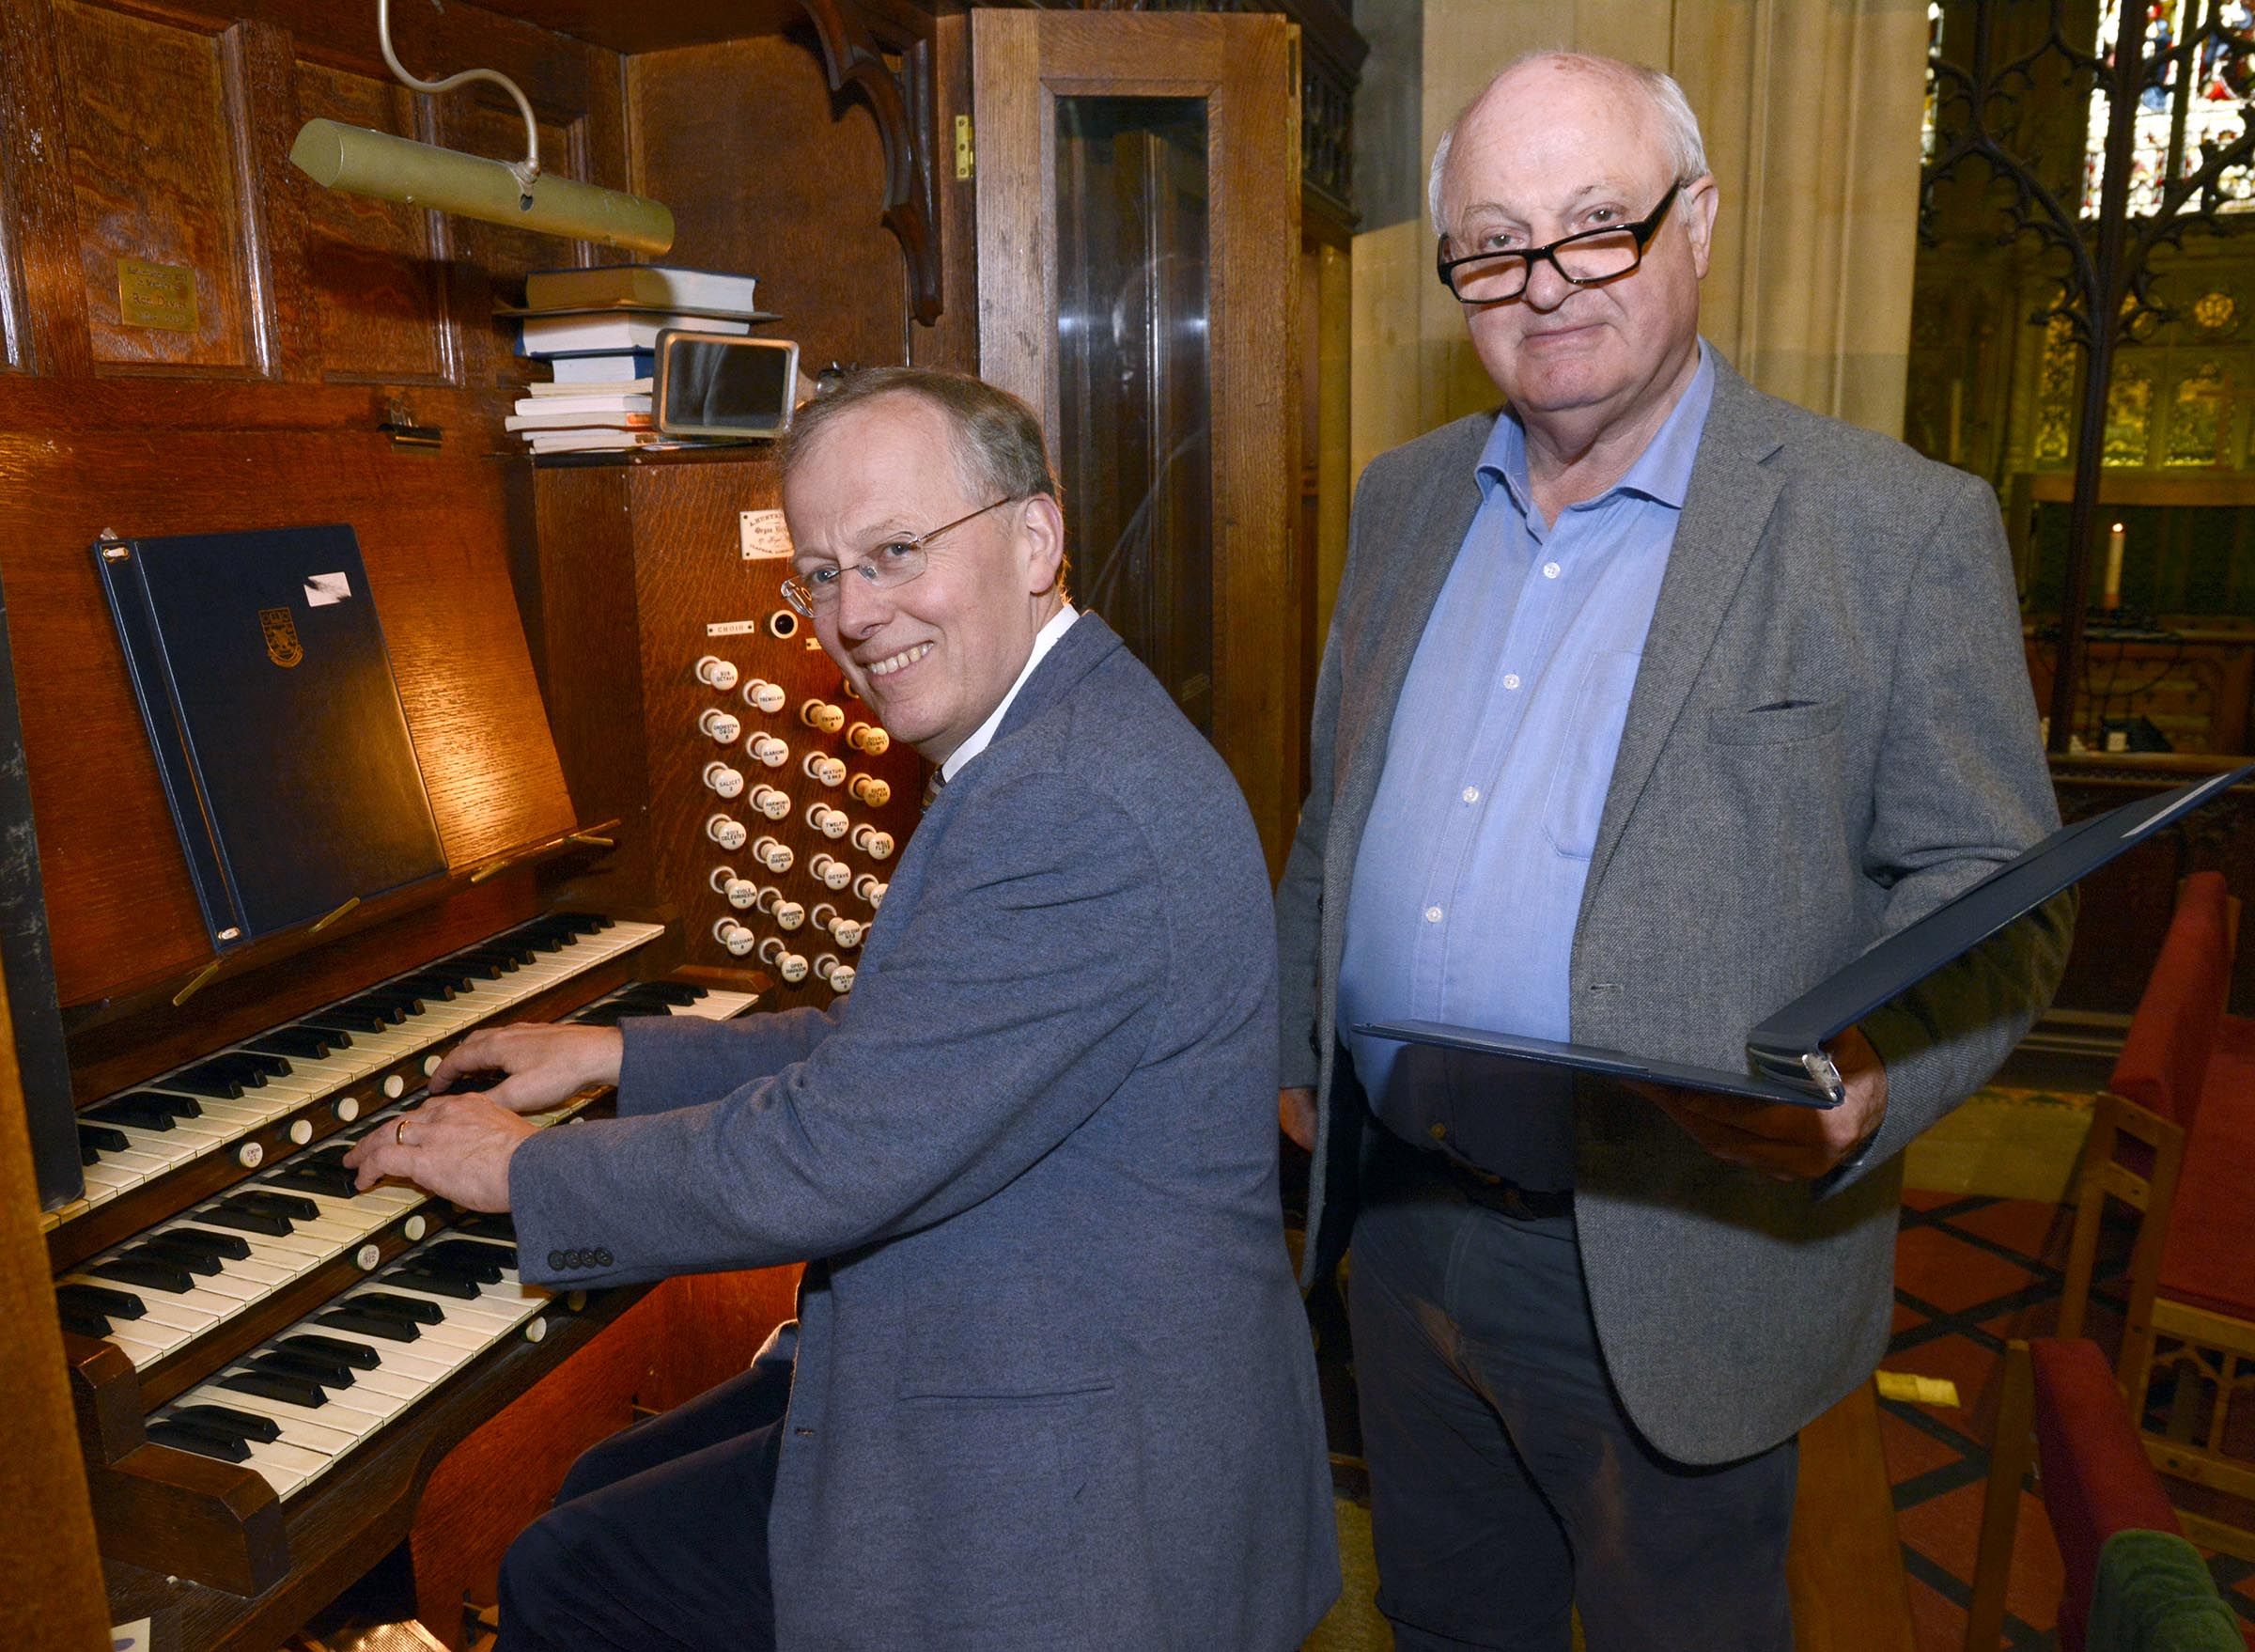 The church organ - with director of music John Halsey and conductor Ben Gunner